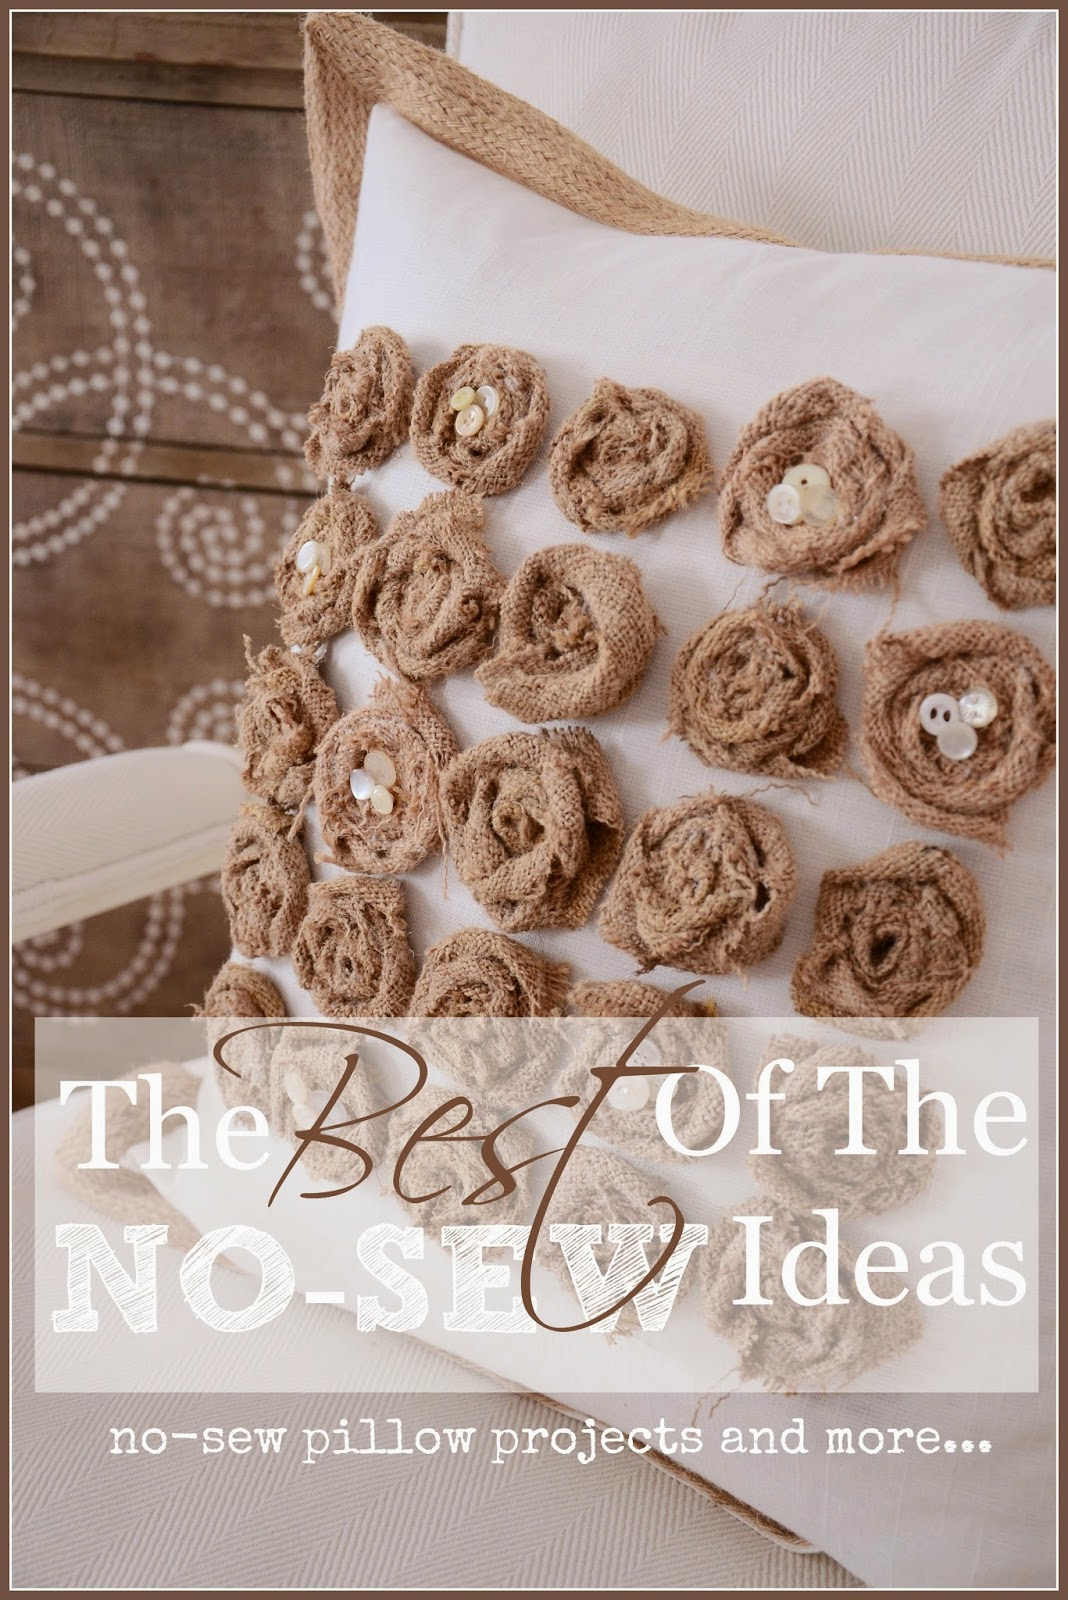 the best of the no-sew ideas